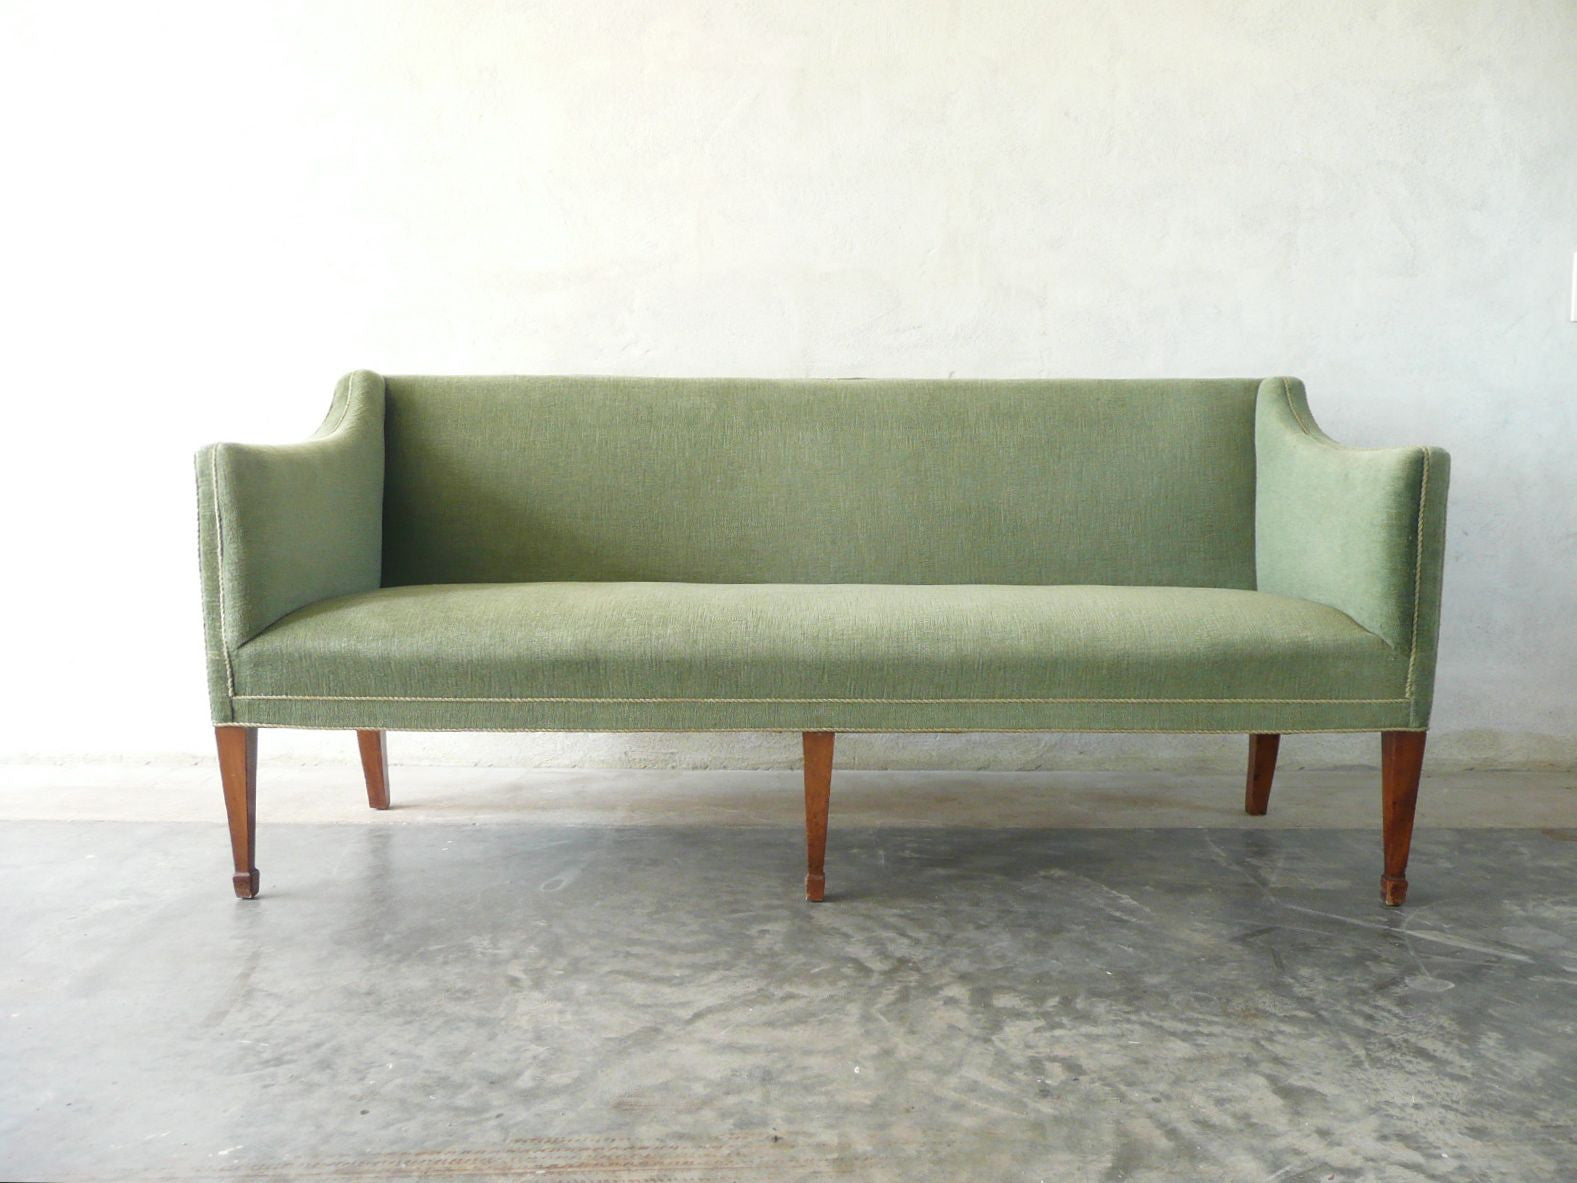 Chase & Sorensen 1940s three seat sofa